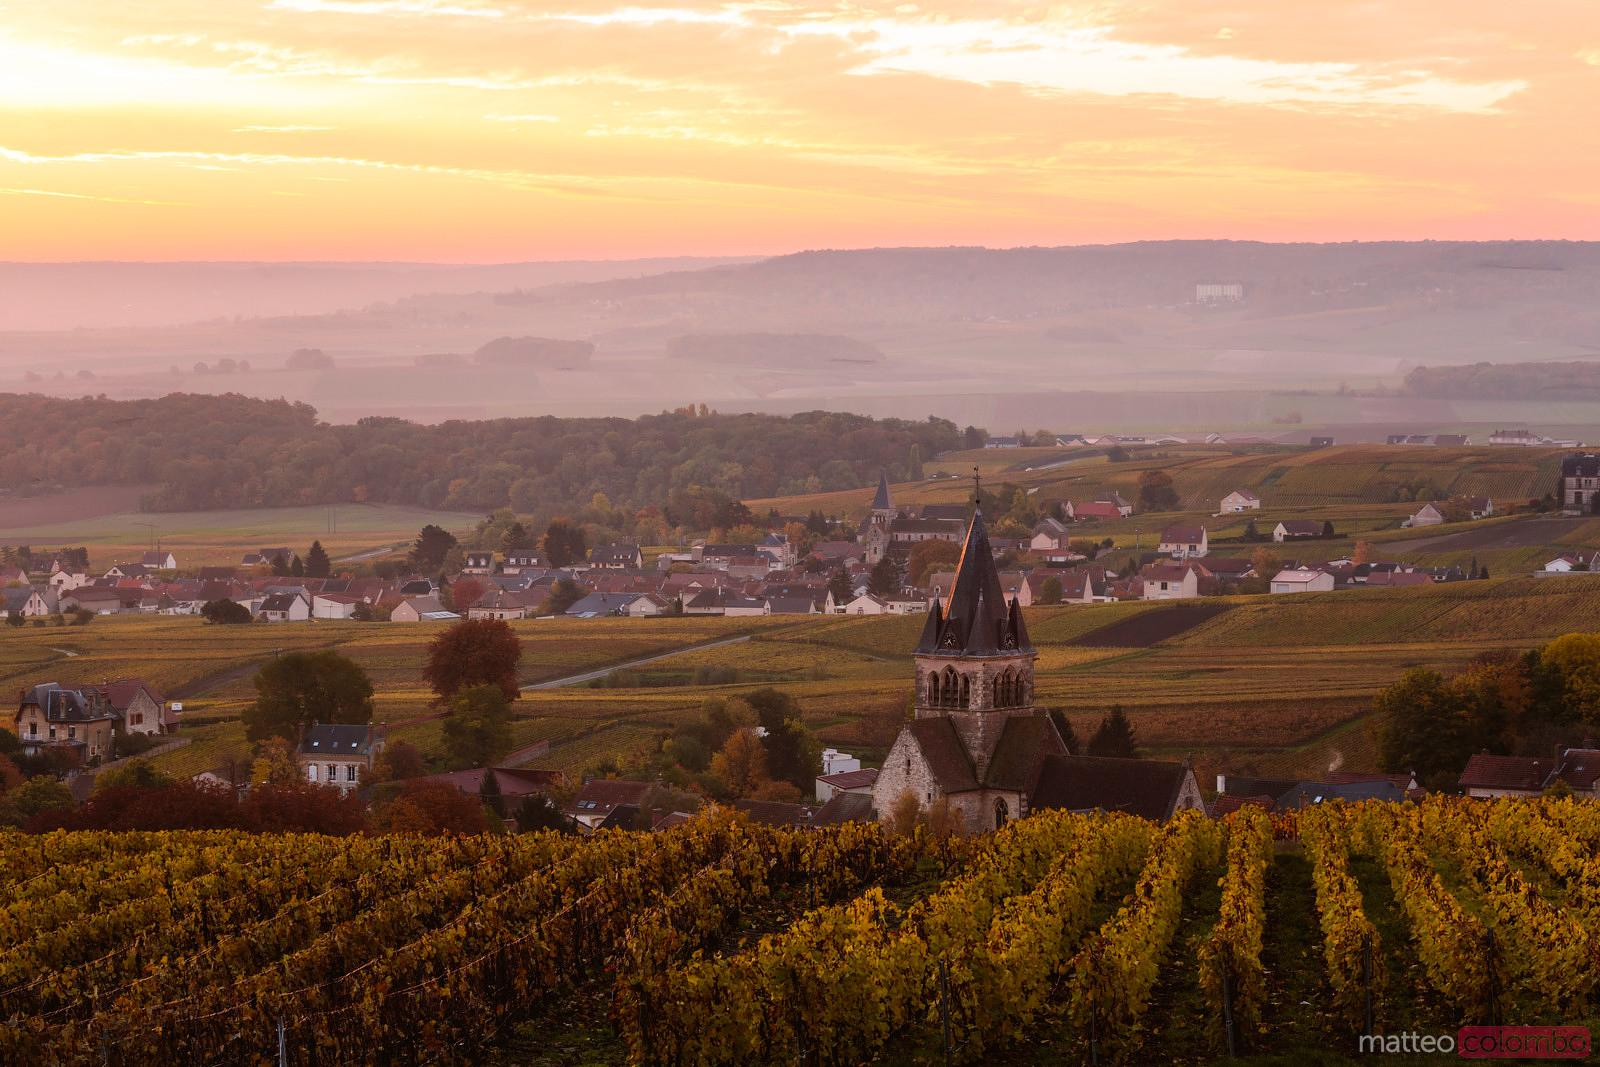 Misty sunrise over vineyards in autumn, Champagne, France